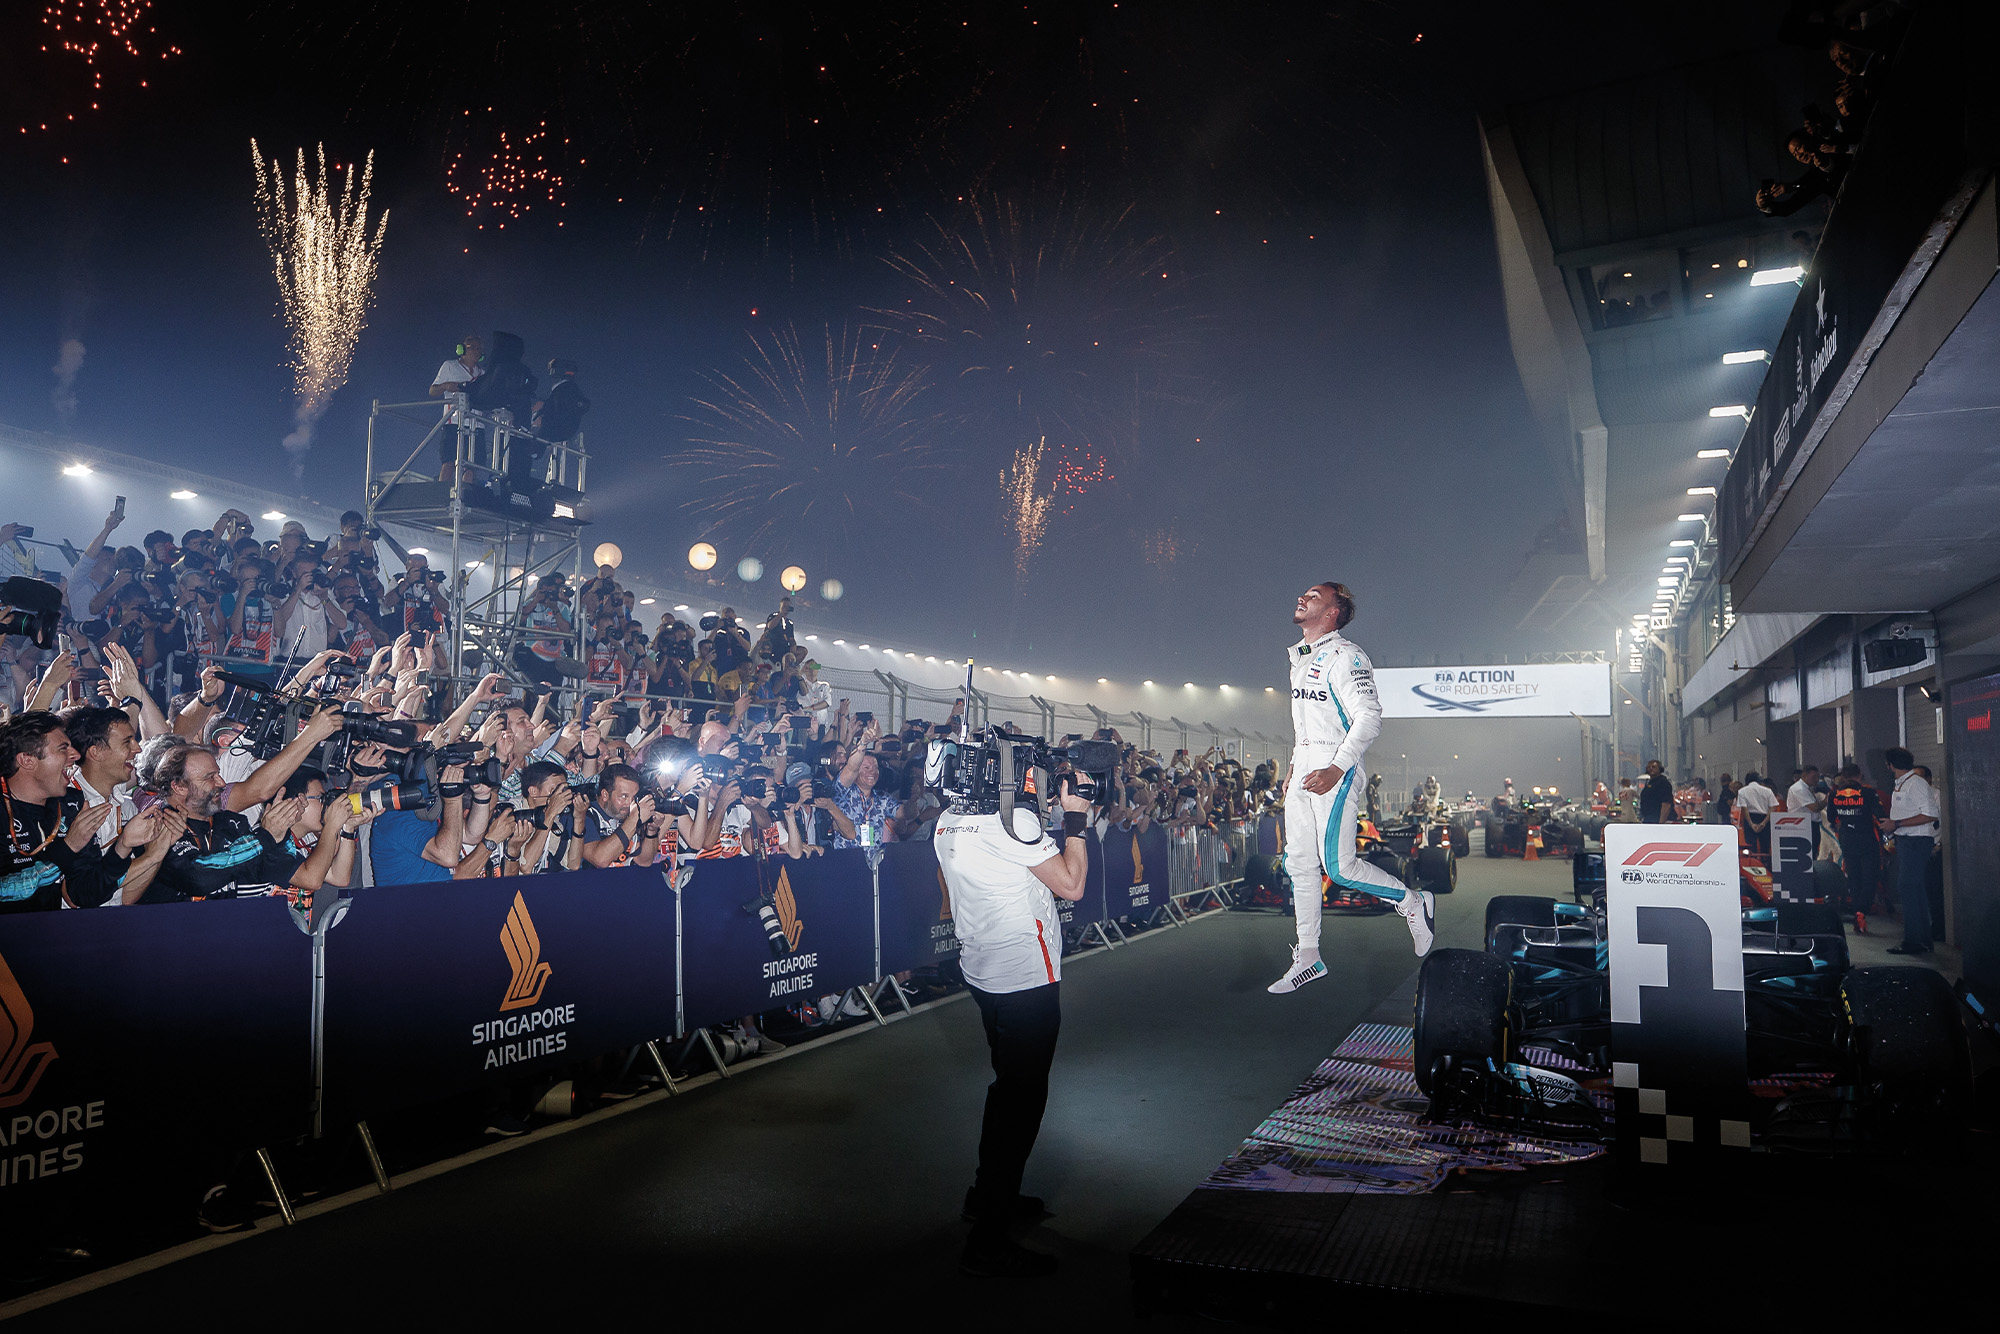 Hamilton leaps off his car after victory in Singapore